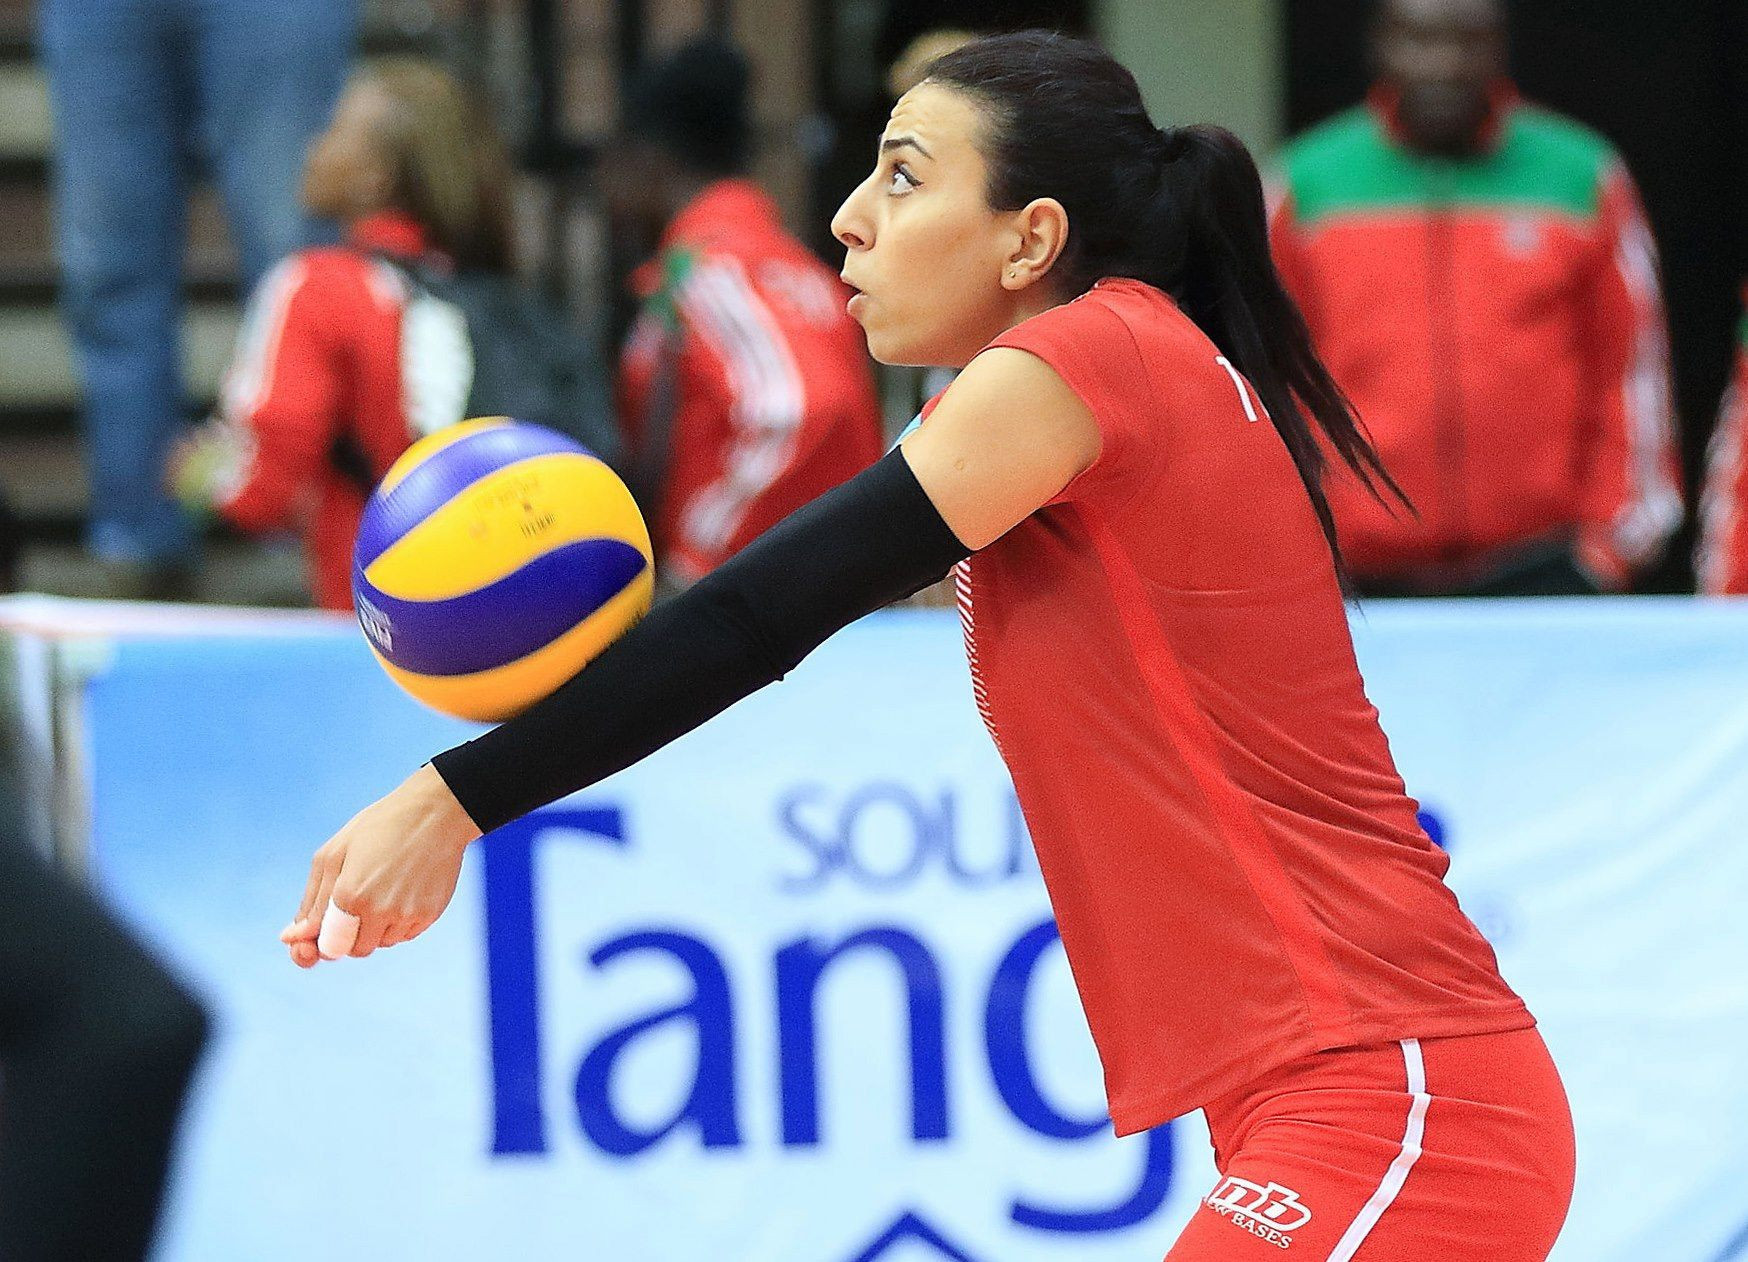 Tunisia came from behind to defeat Nigeria ©CAVB